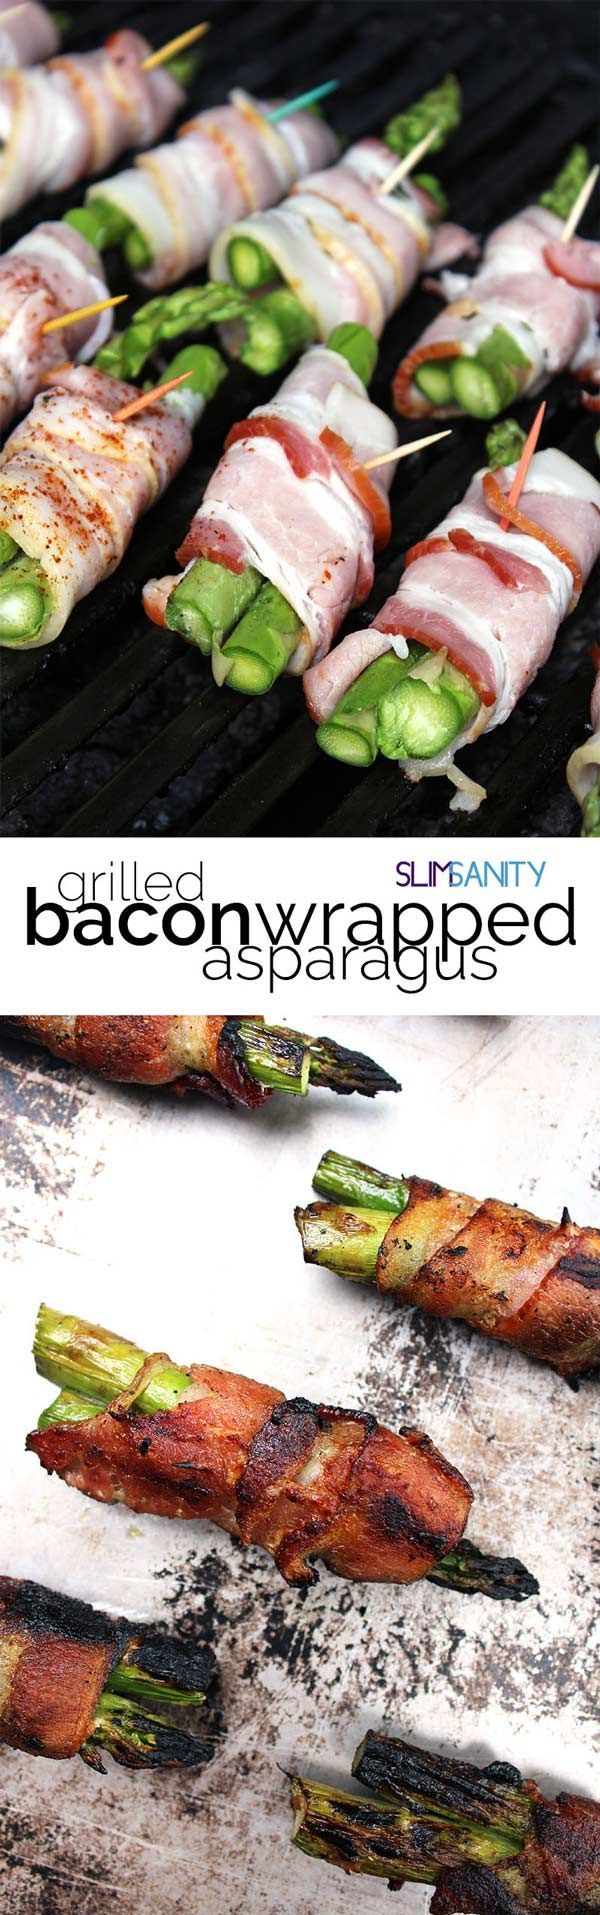 Grilled Bacon Wrapped Asparagus Recipe Grilling